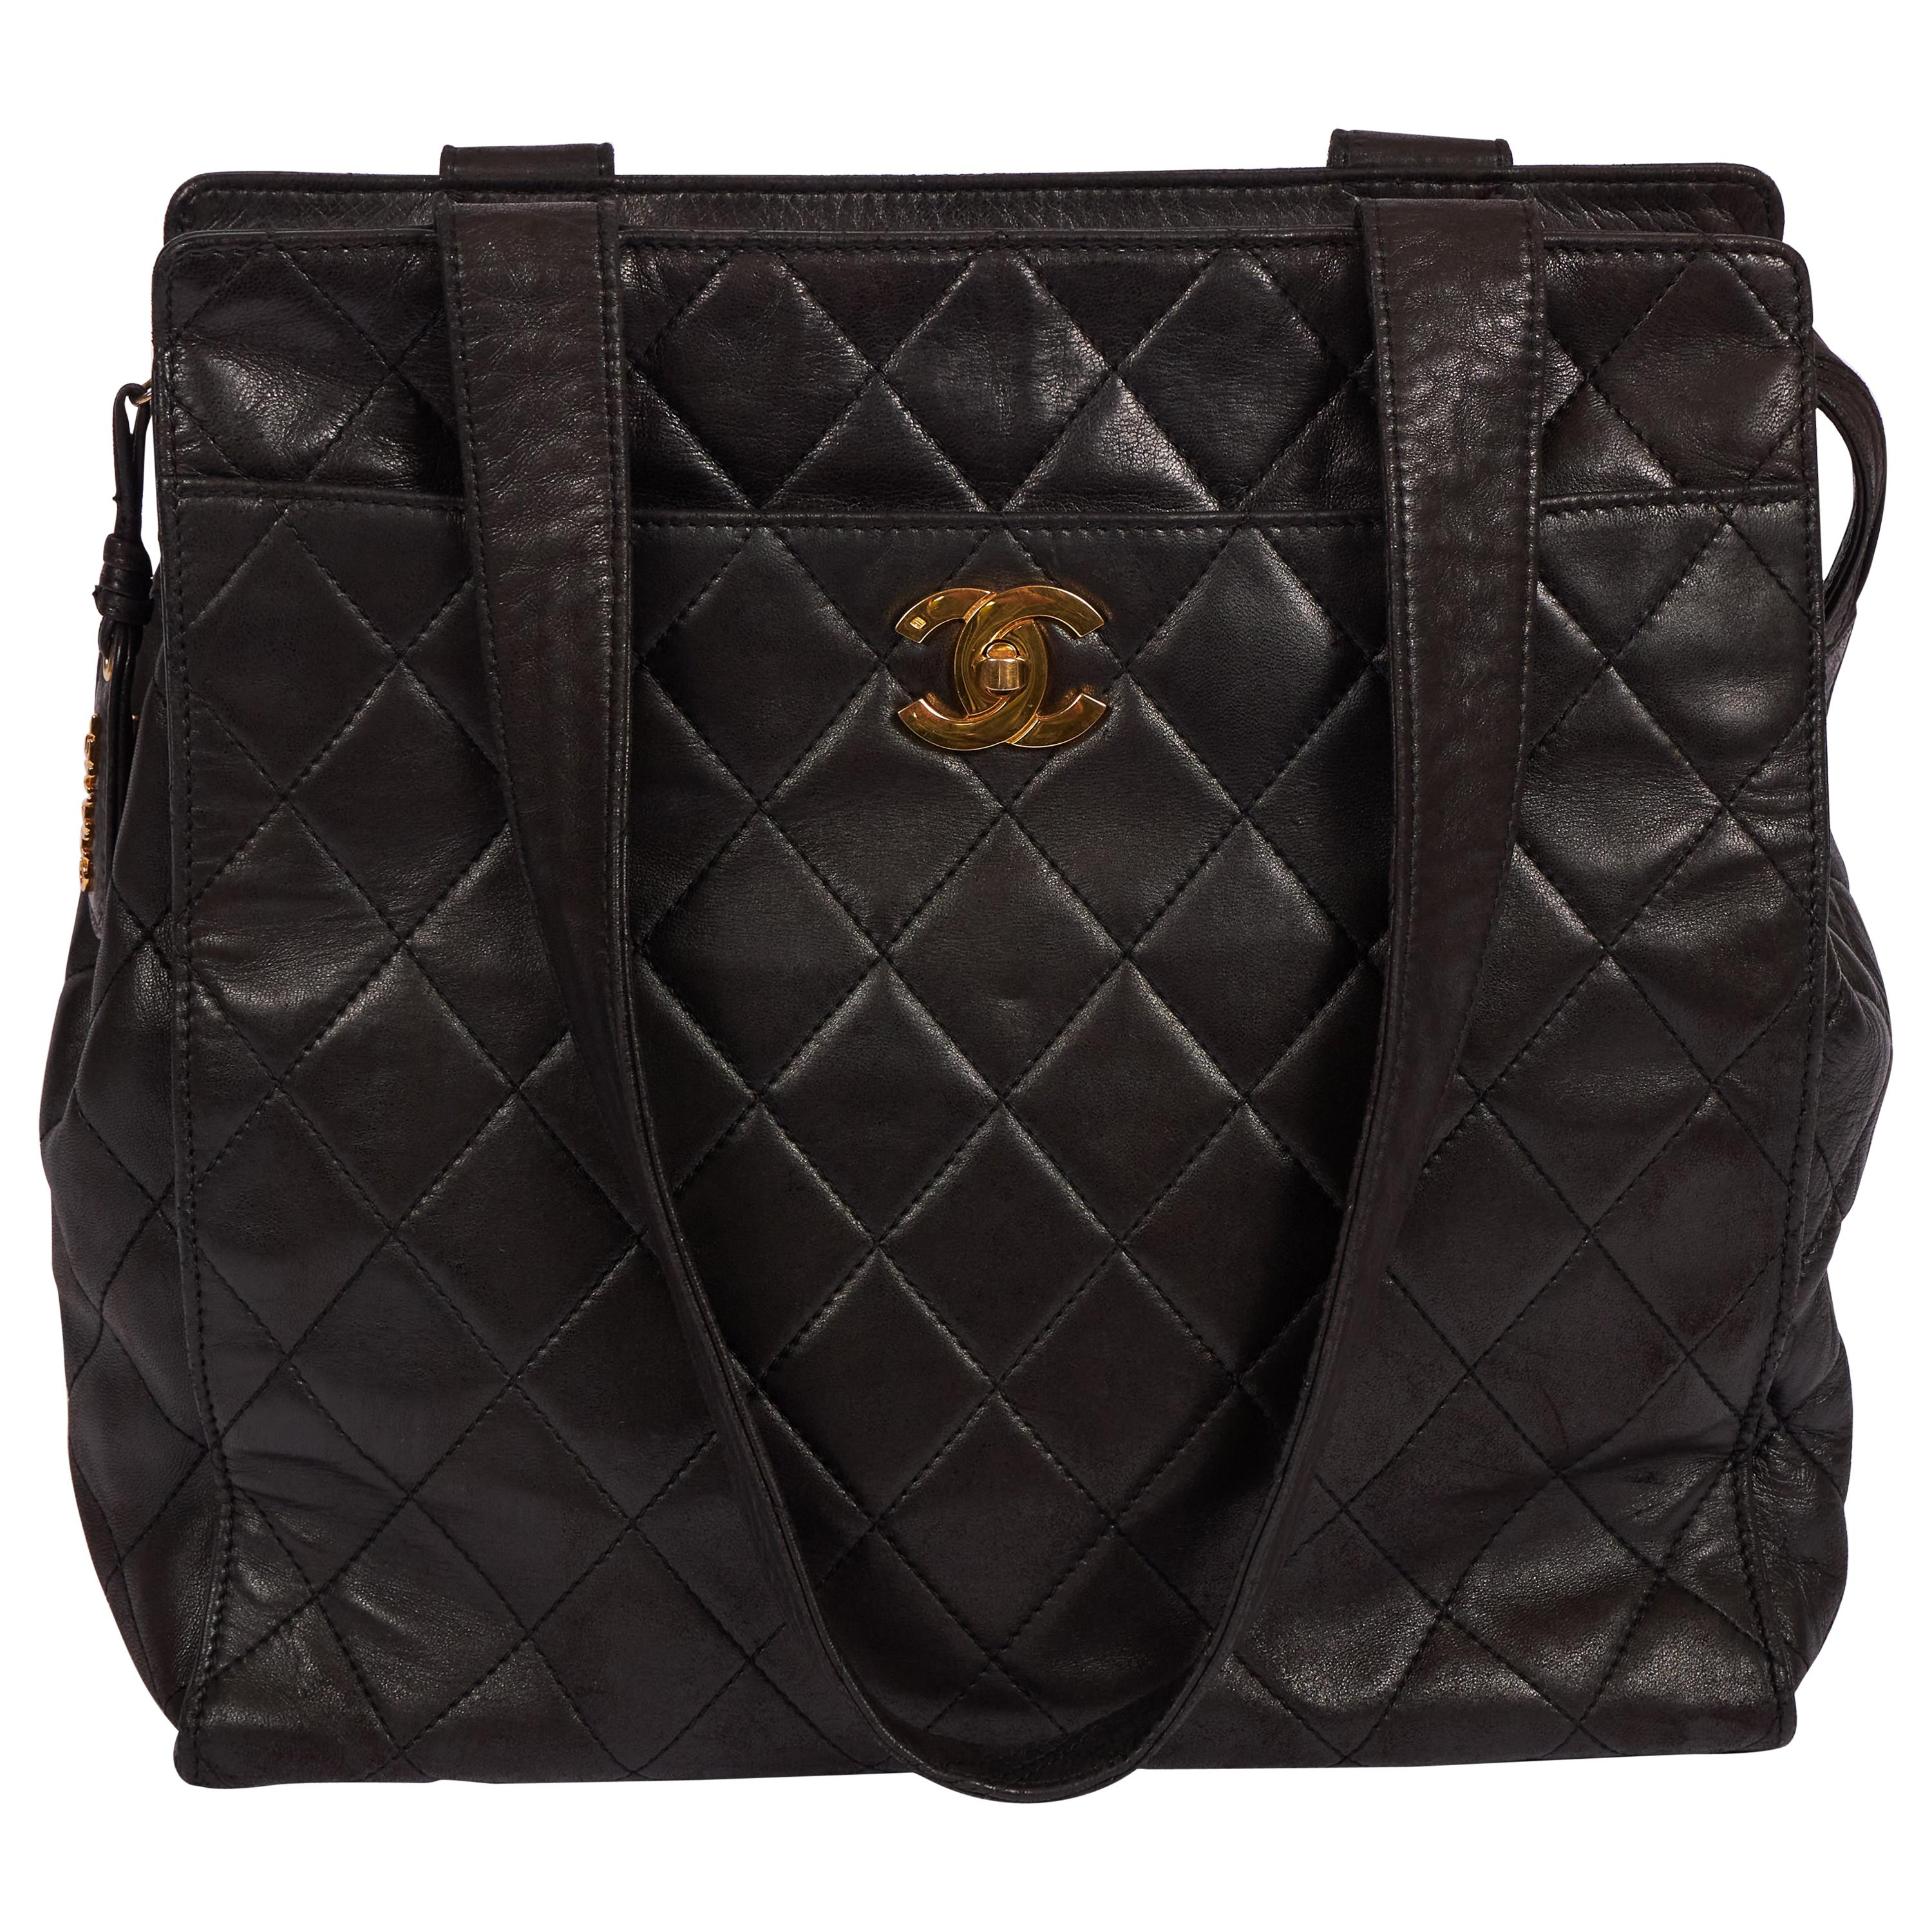 Vintage Chanel Black Lambskin Quilted Leather Tote Bag Gold CC Logo